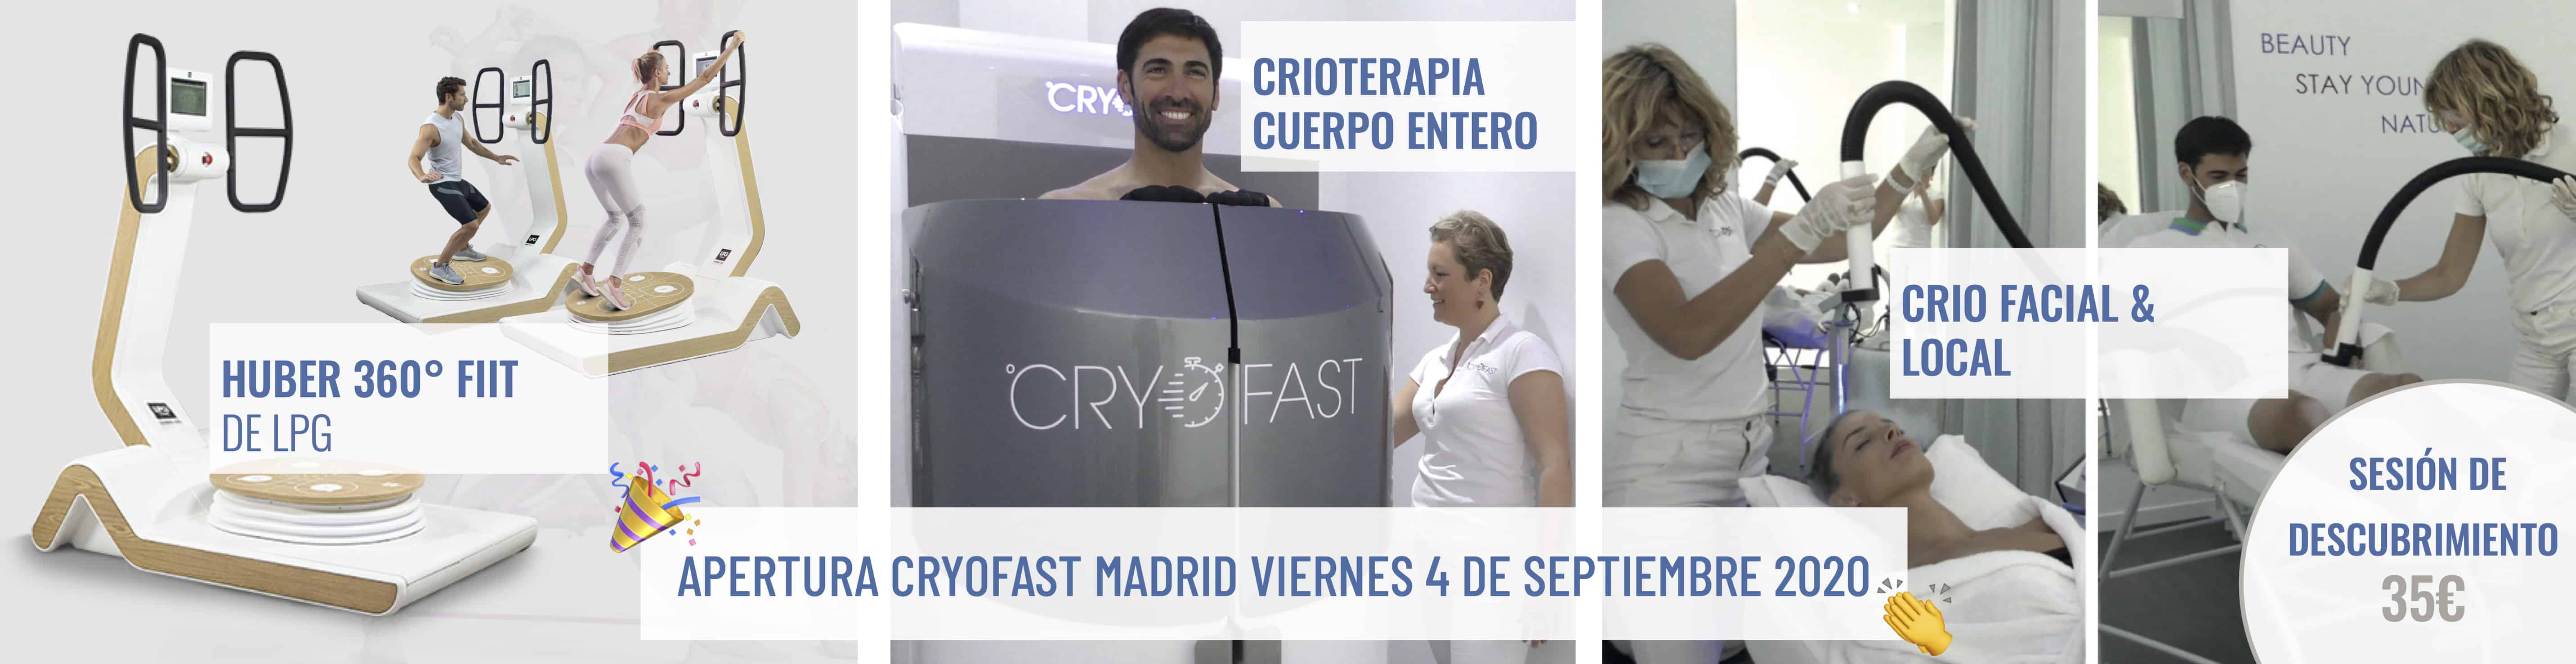 Crioterapia-Madrid-Espana